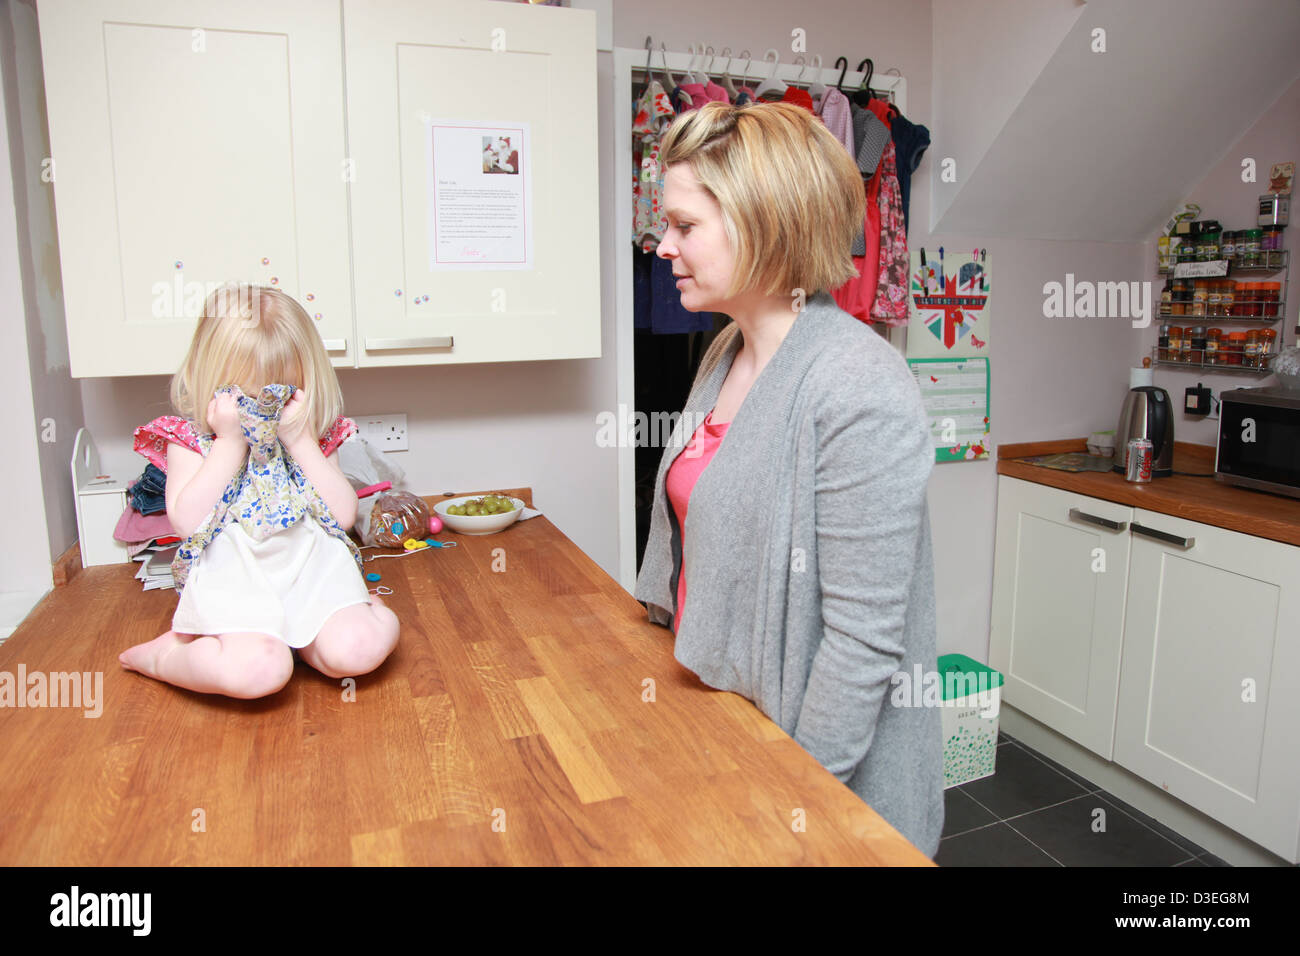 Toddler having a temper tantrum in the kitchen with mum. - Stock Image